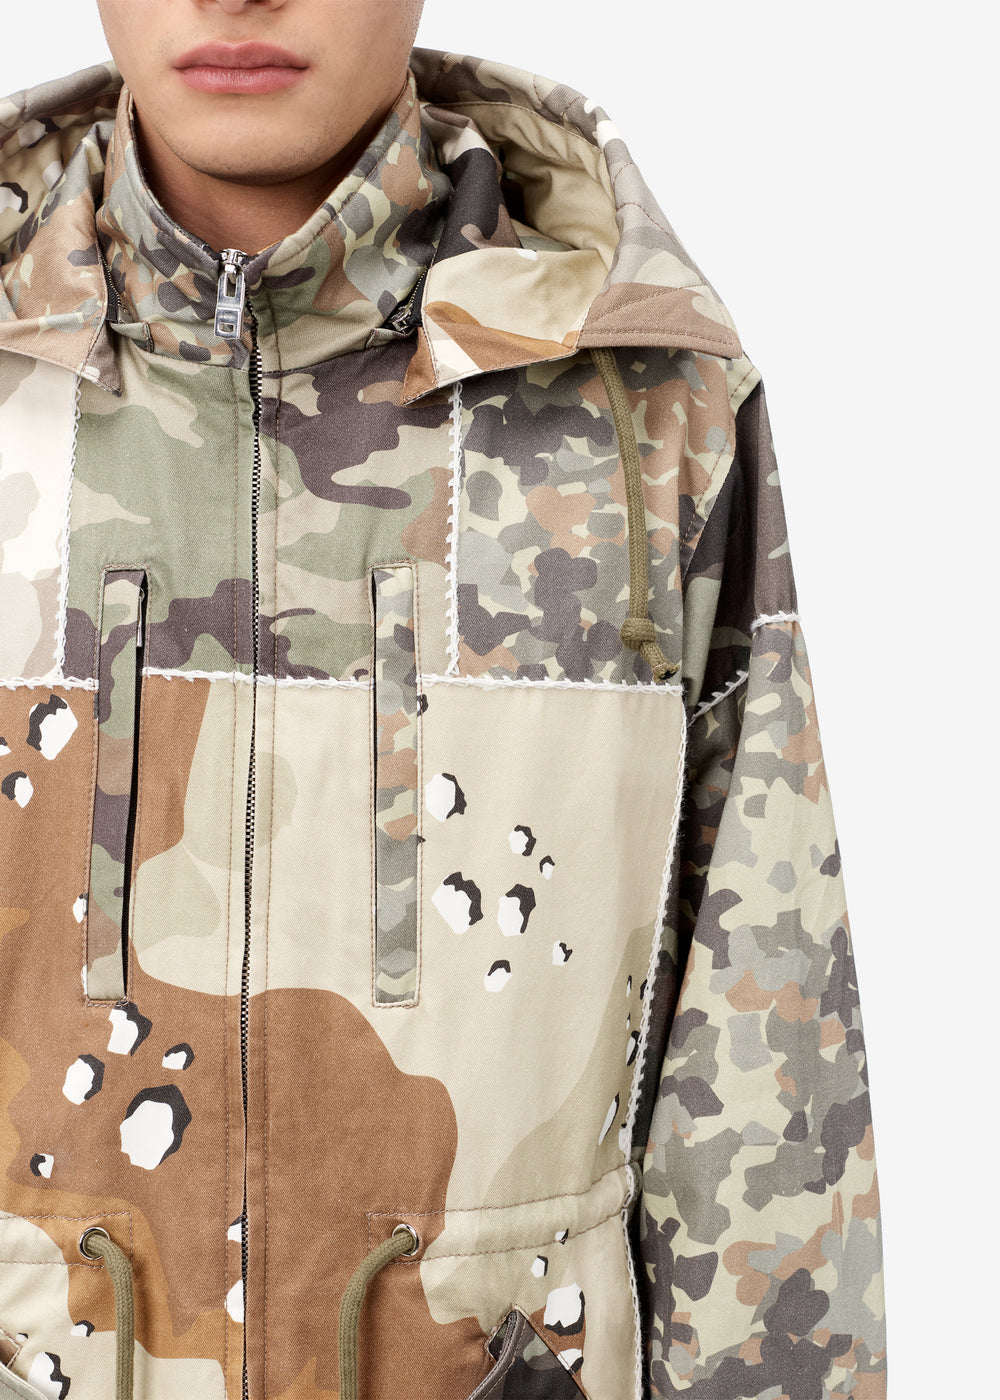 LONG HOODED PARKA - Camo